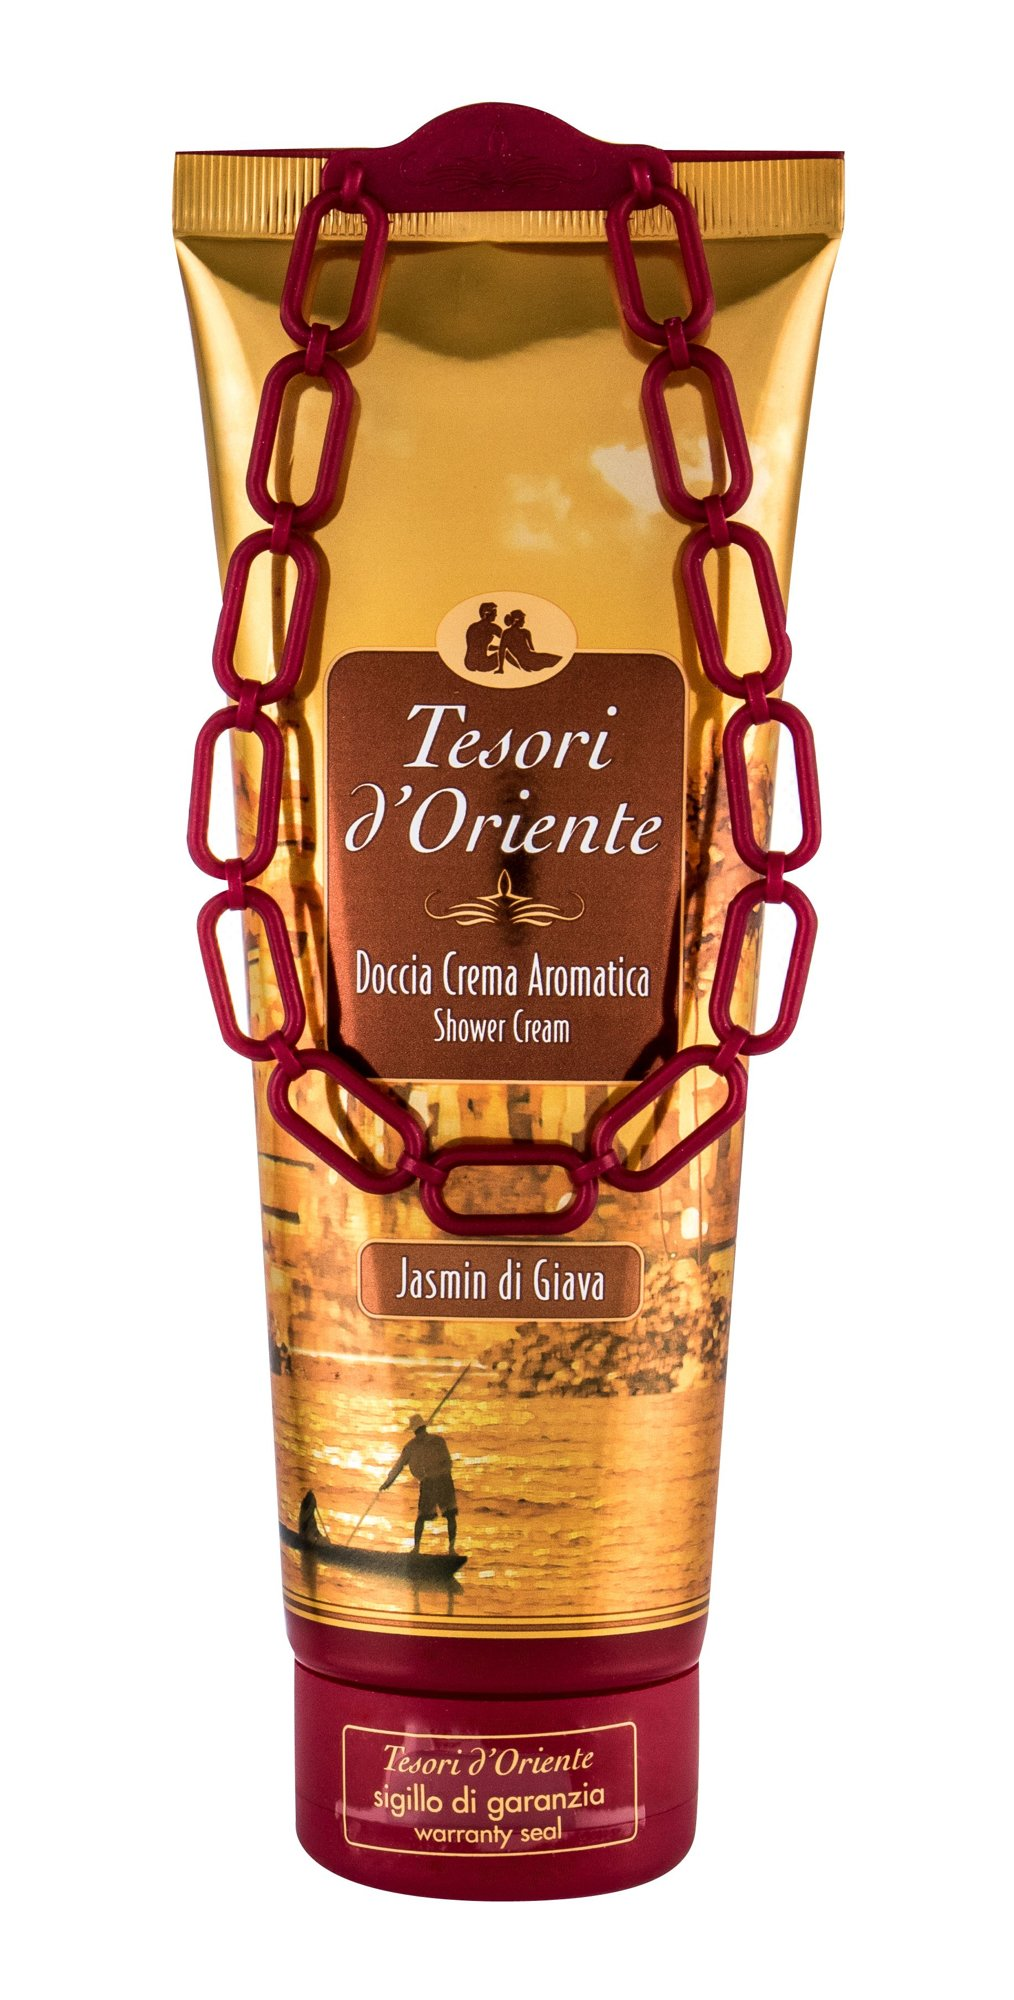 Tesori d´Oriente Jasmin di Giava Shower Cream 250ml